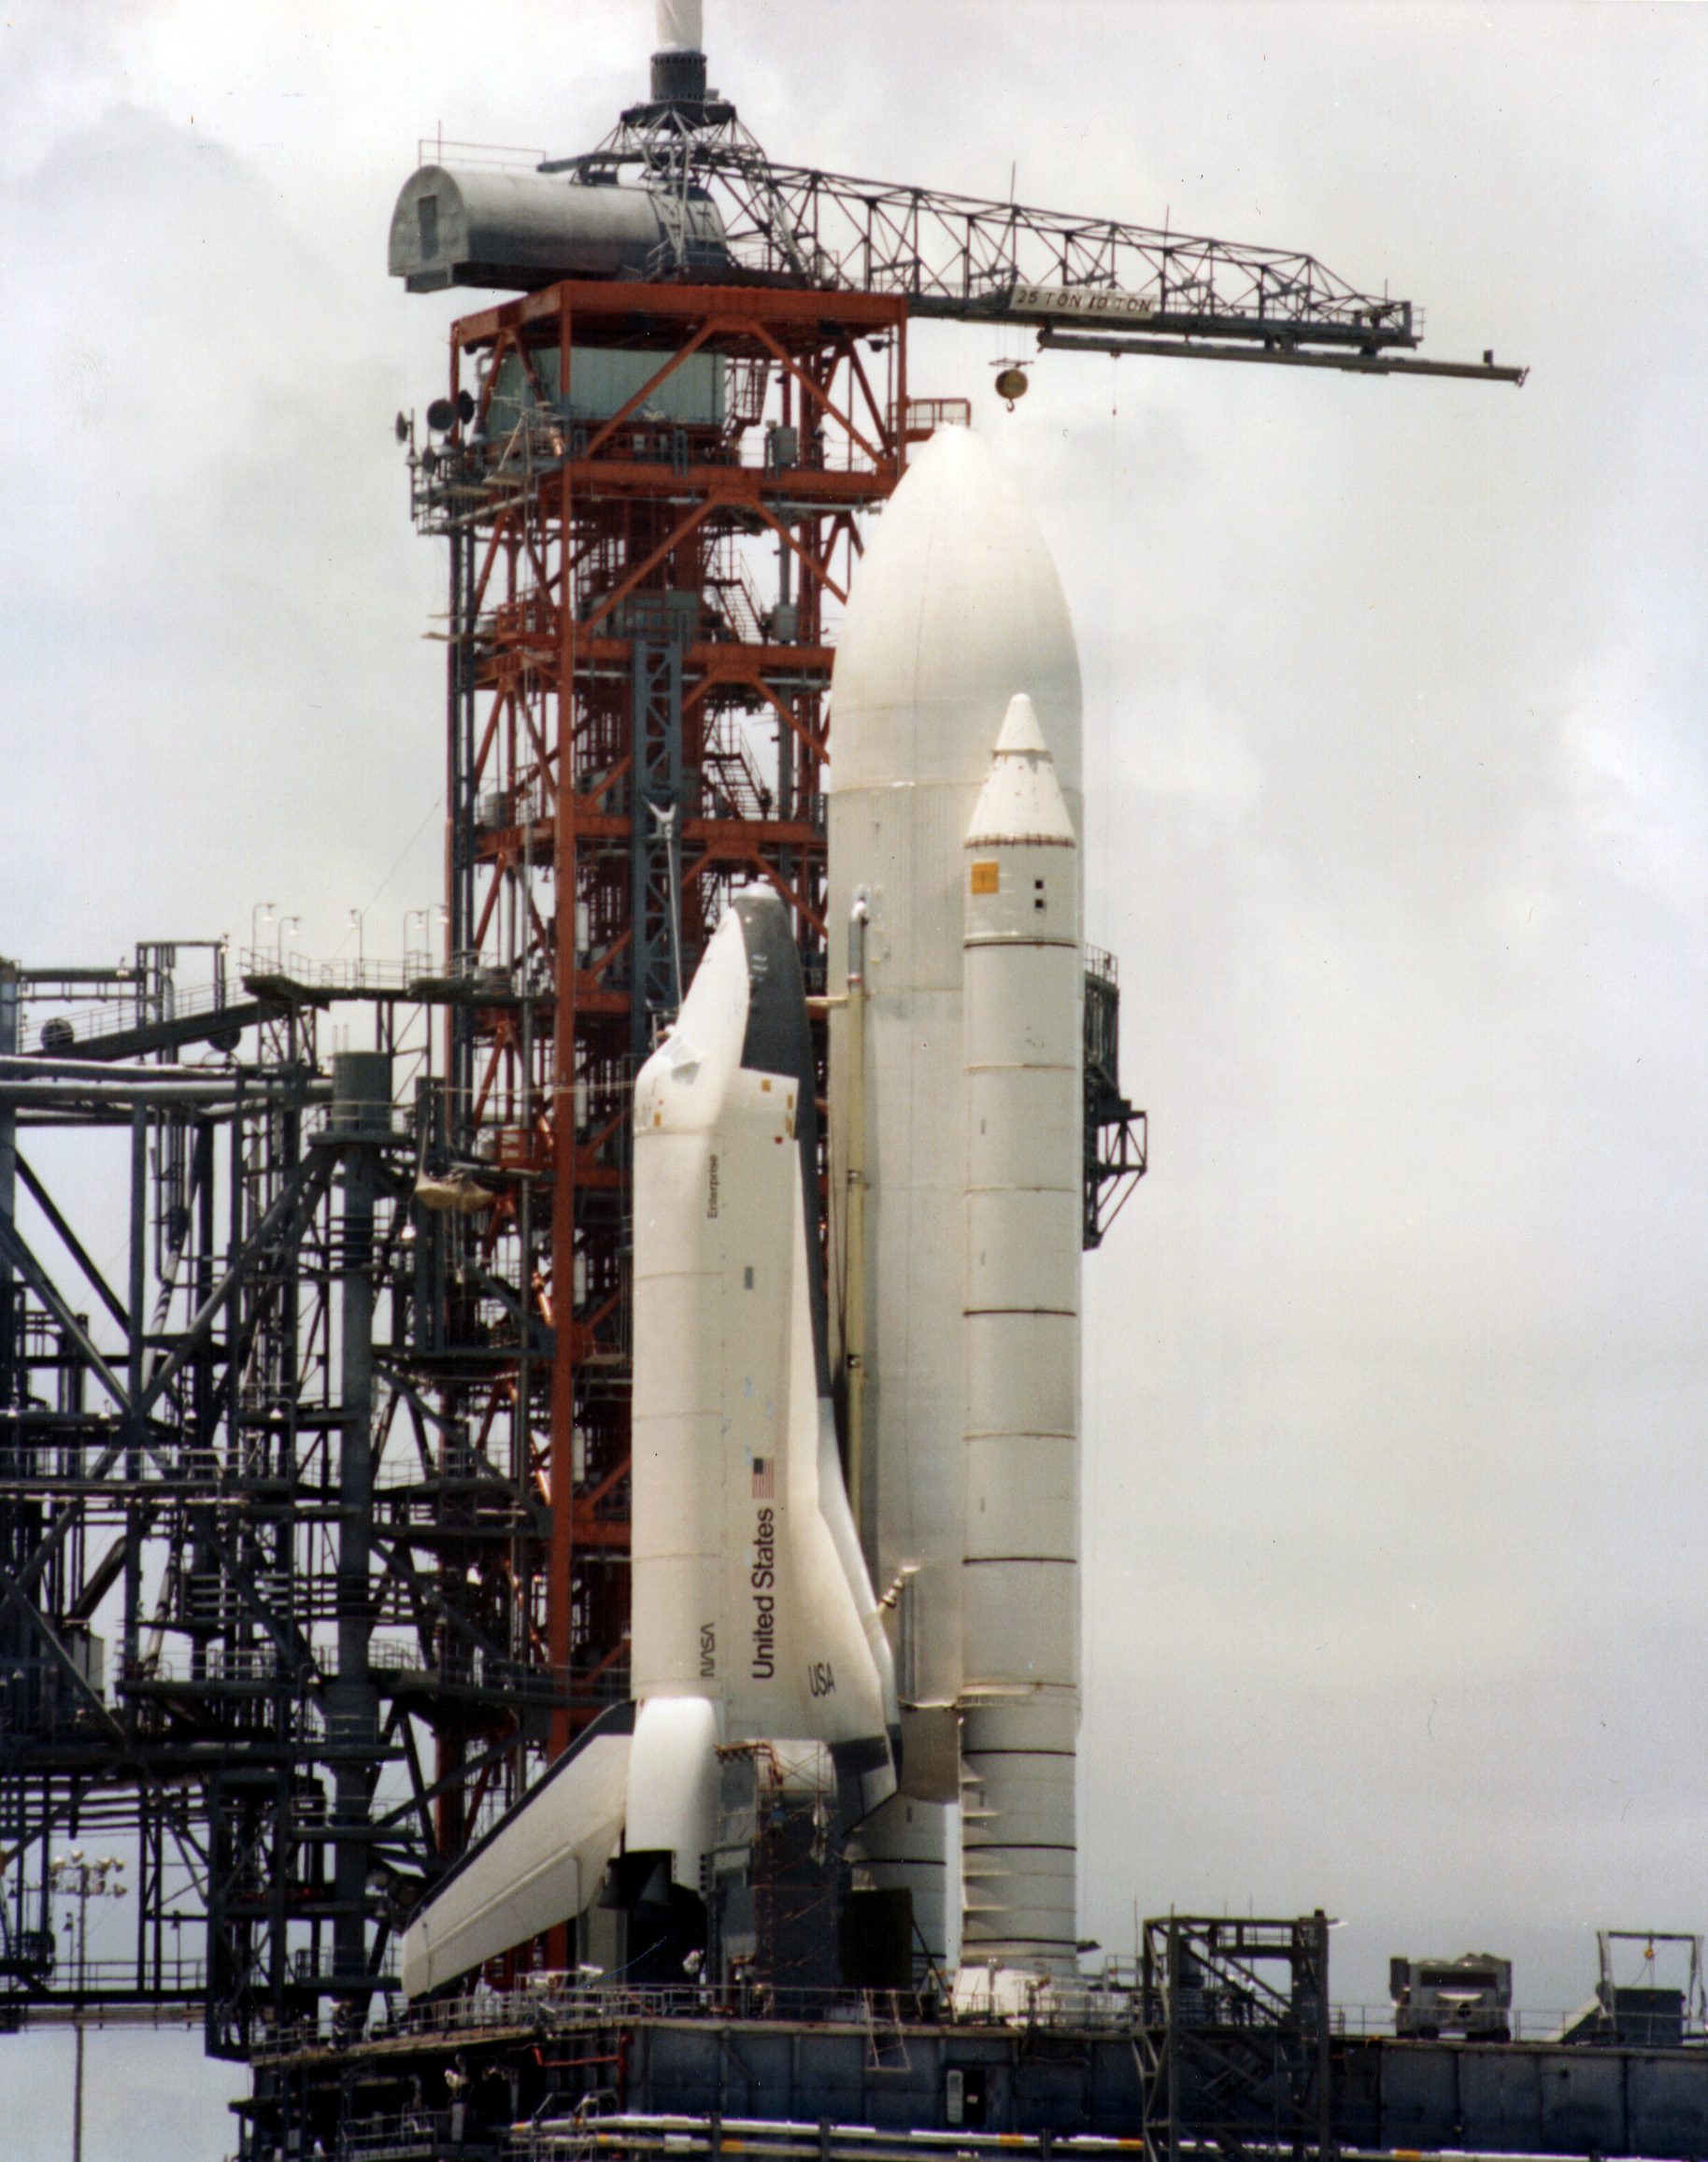 http://upload.wikimedia.org/wikipedia/commons/7/79/Enterprise_KSC_1979.jpg